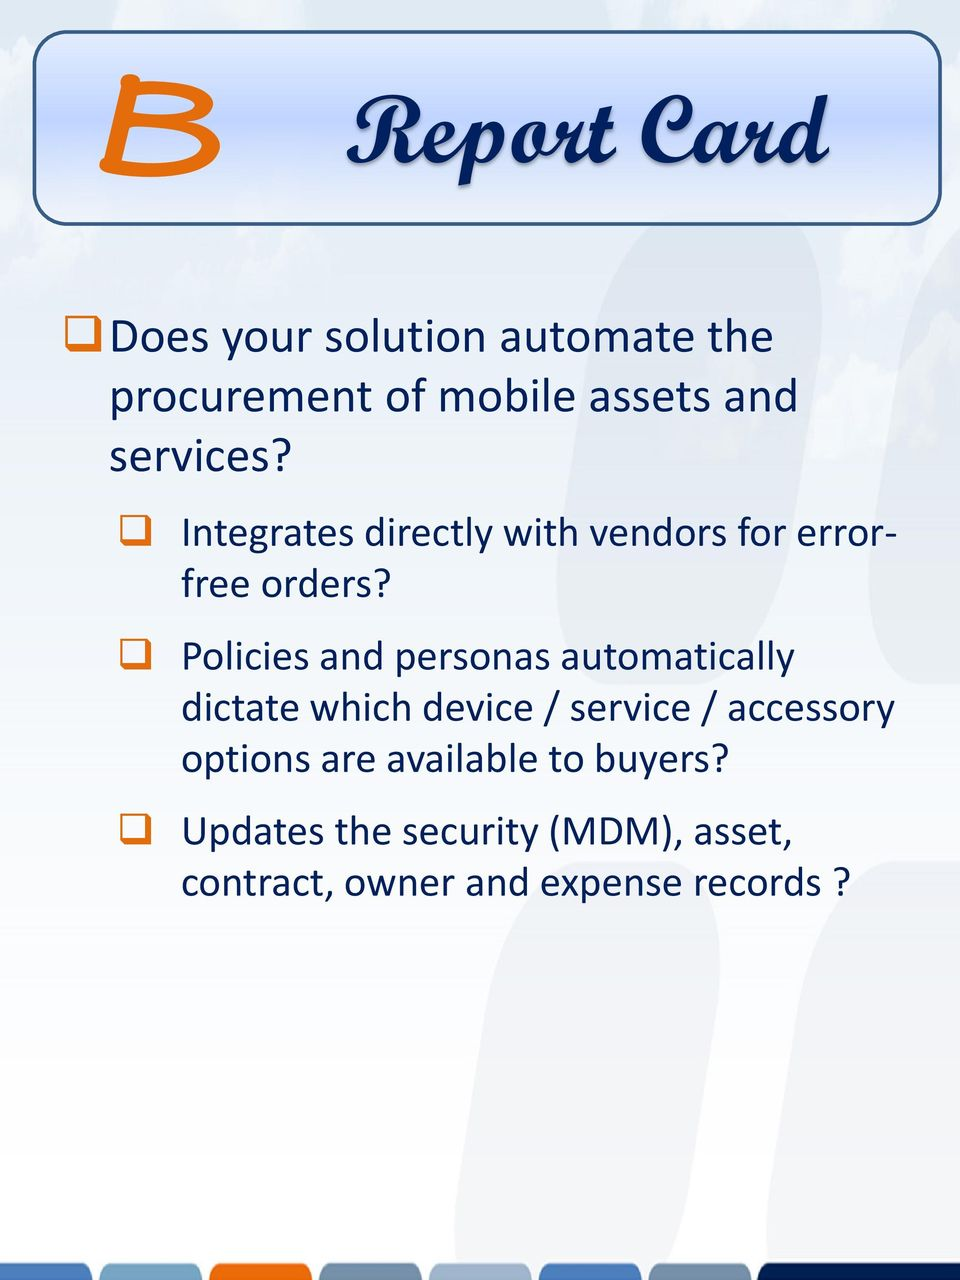 Policies and personas automatically dictate which device / service / accessory